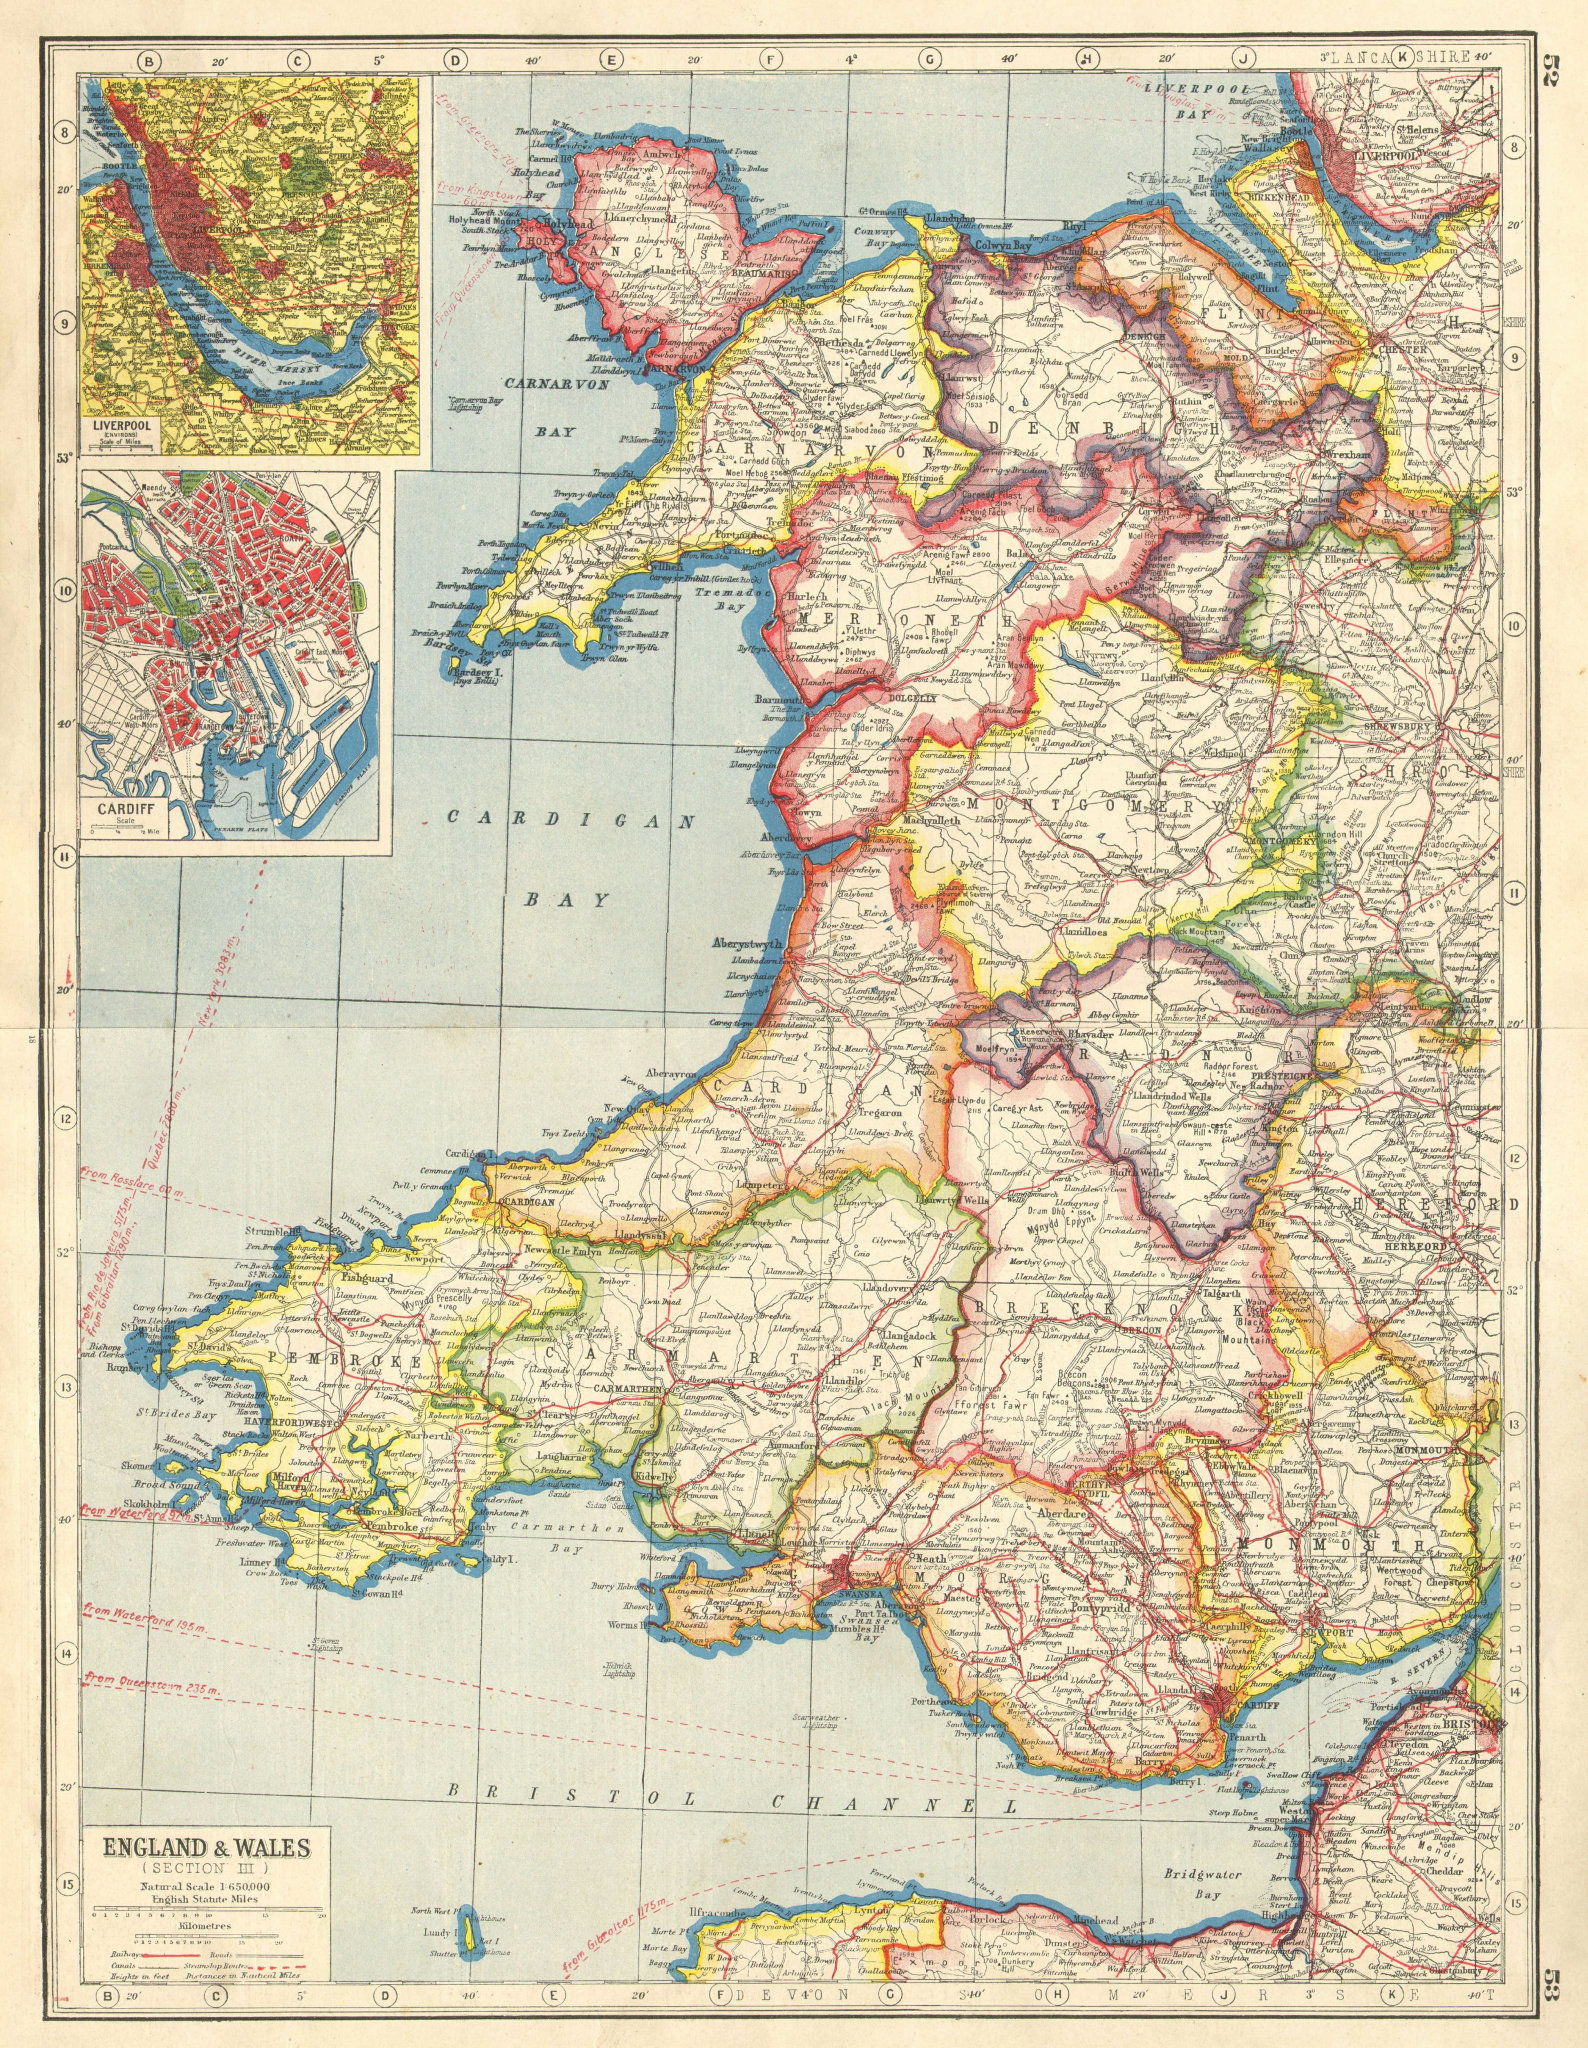 Associate Product WALES. Inset Merseyside & Cardiff plans. HARMSWORTH 1920 old antique map chart